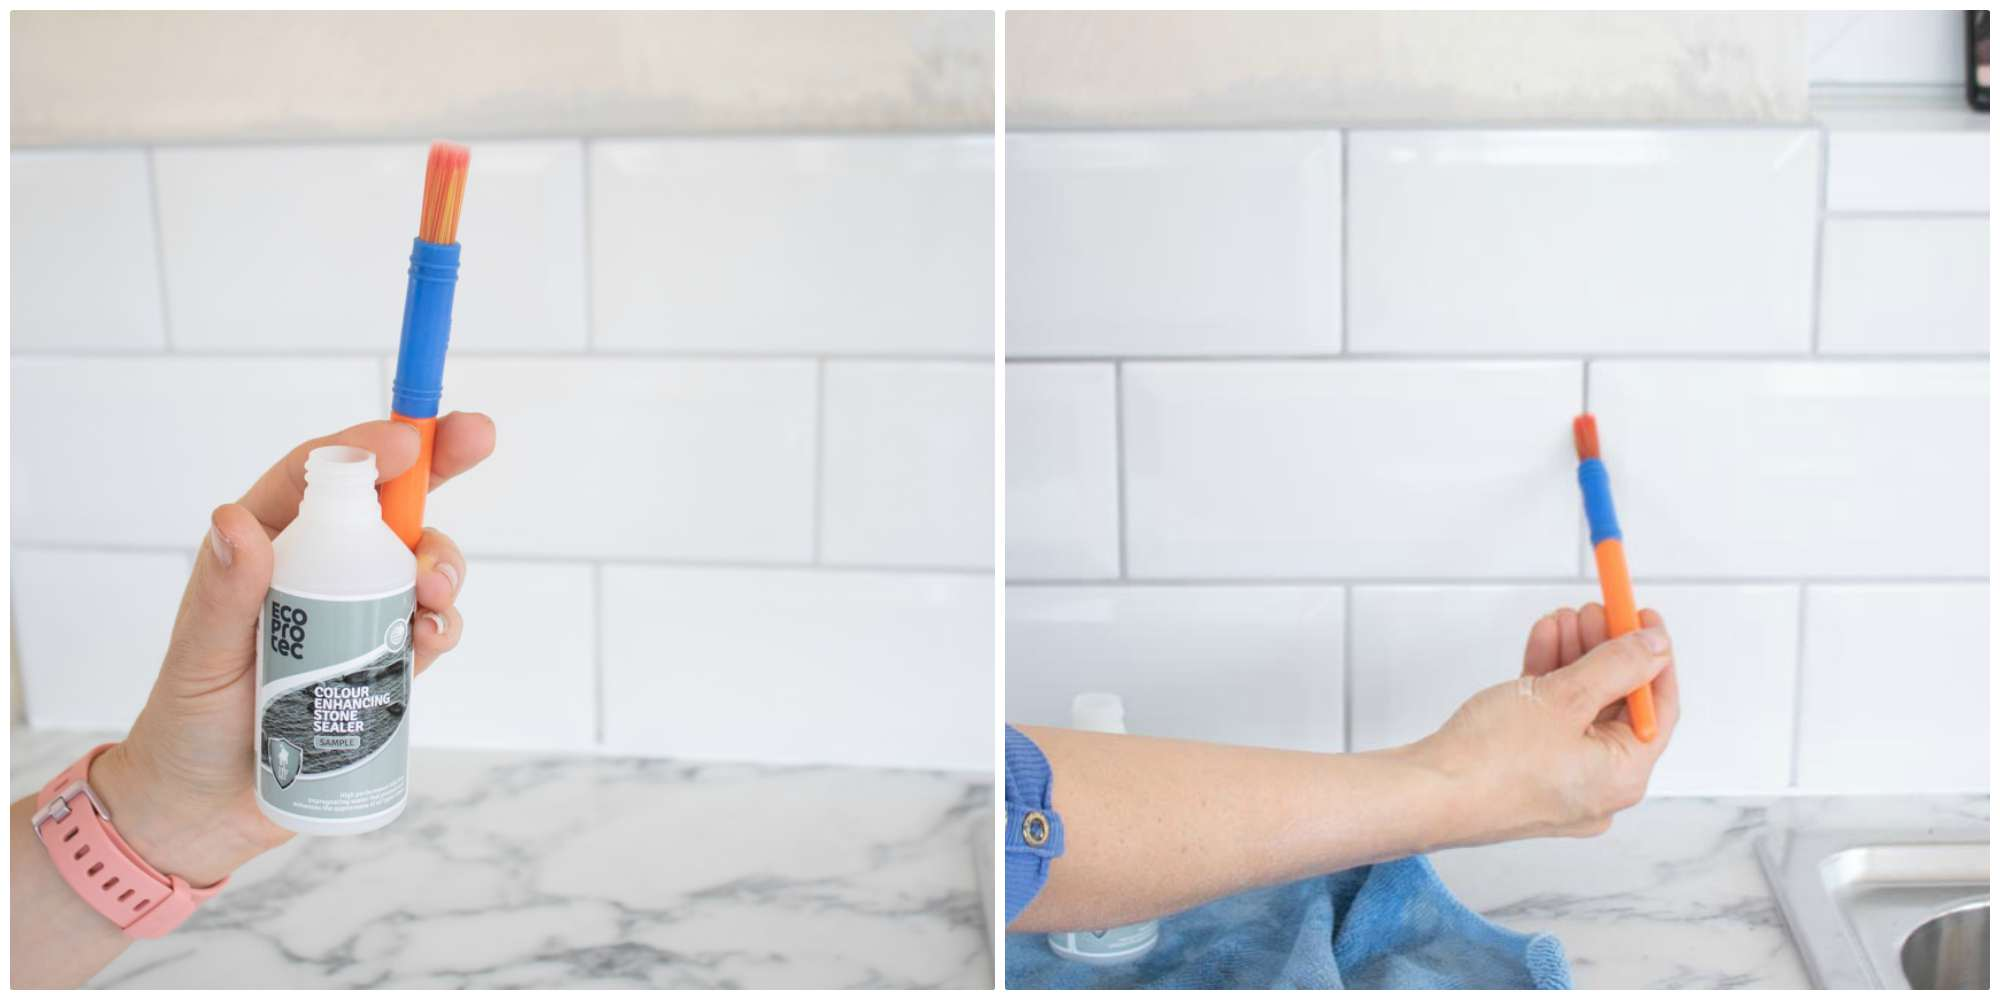 sealing grout between tiles using a paint brush